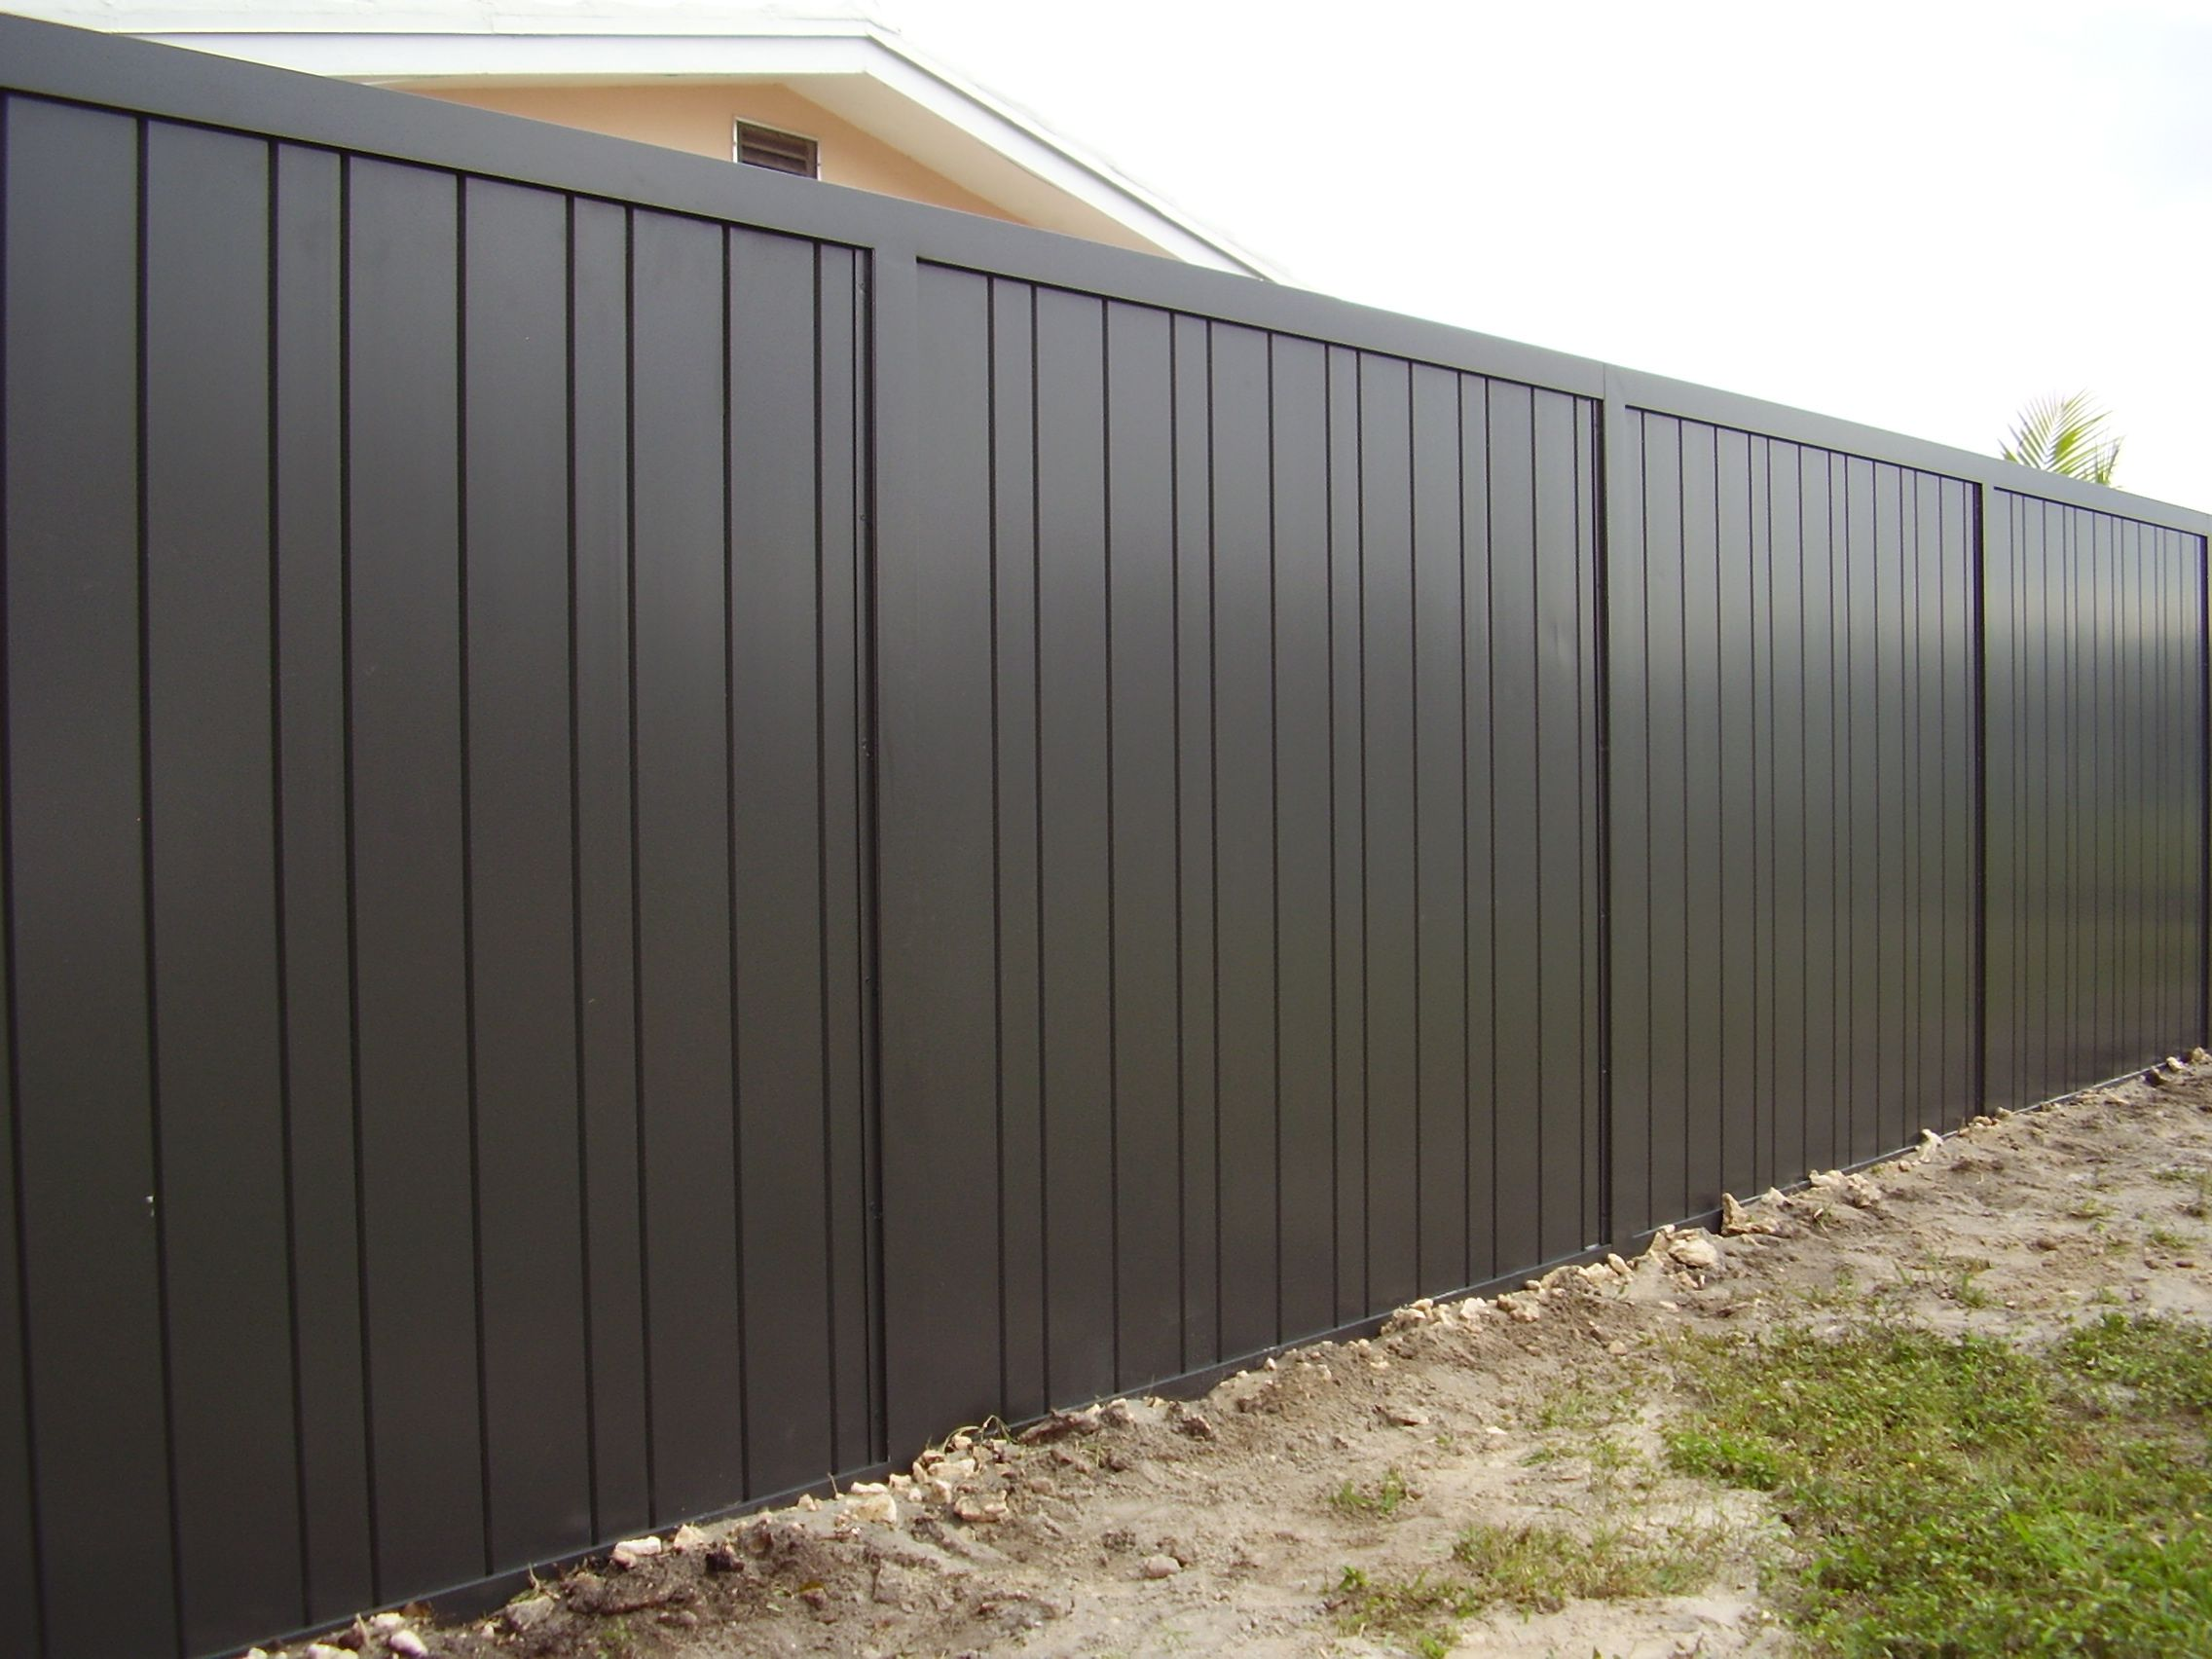 Aluminum privacy fencing google search homey ideas pinterest privacy fences fences and - Aluminum vs steel fencing ...